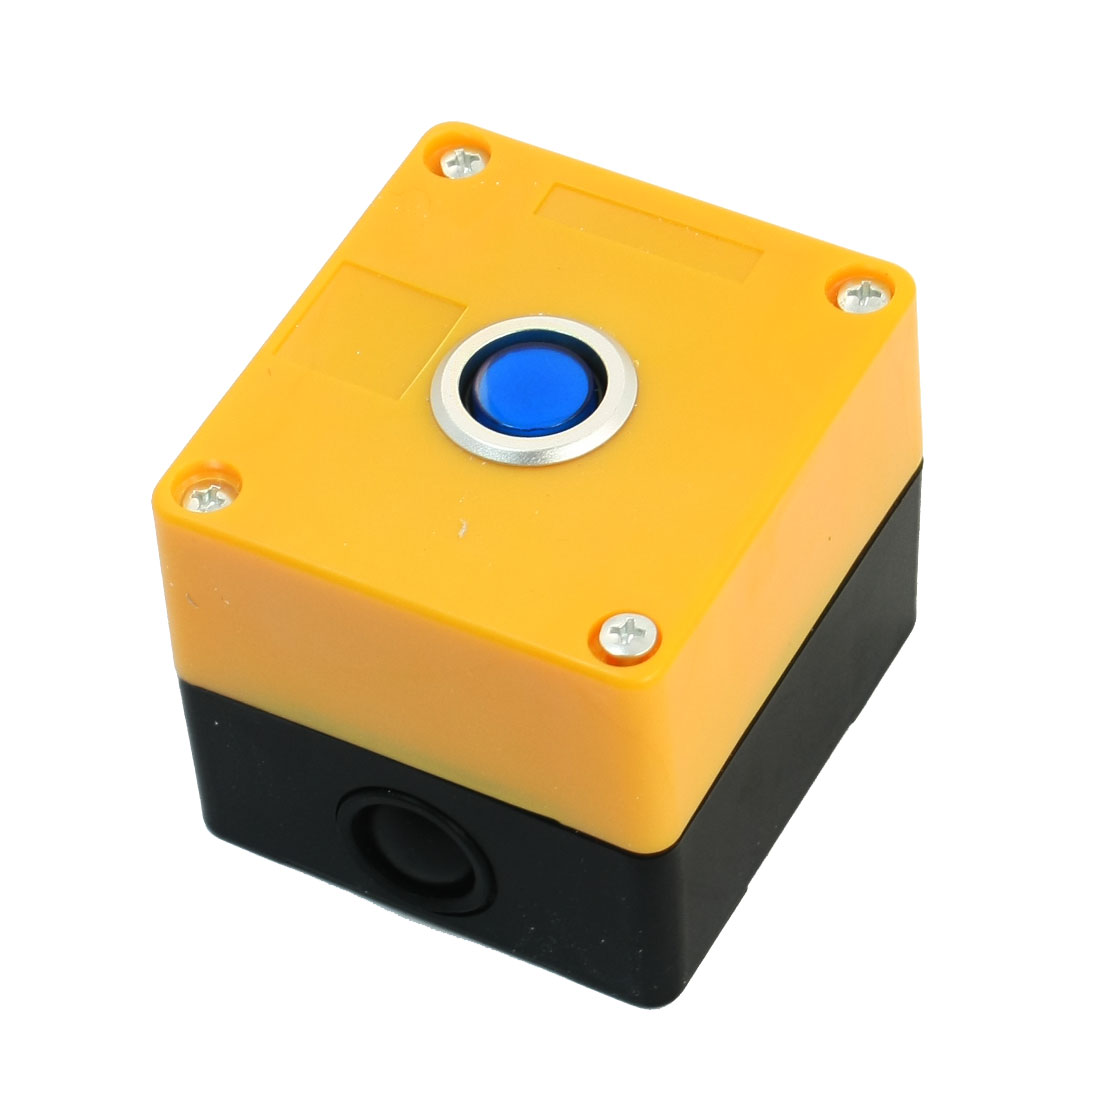 AC 220V 5A SPDT 5Pin 1NO 1NC Latching Blue Pilot Lamp Yellow Plastic Case Push Button Station Swicth Control Box